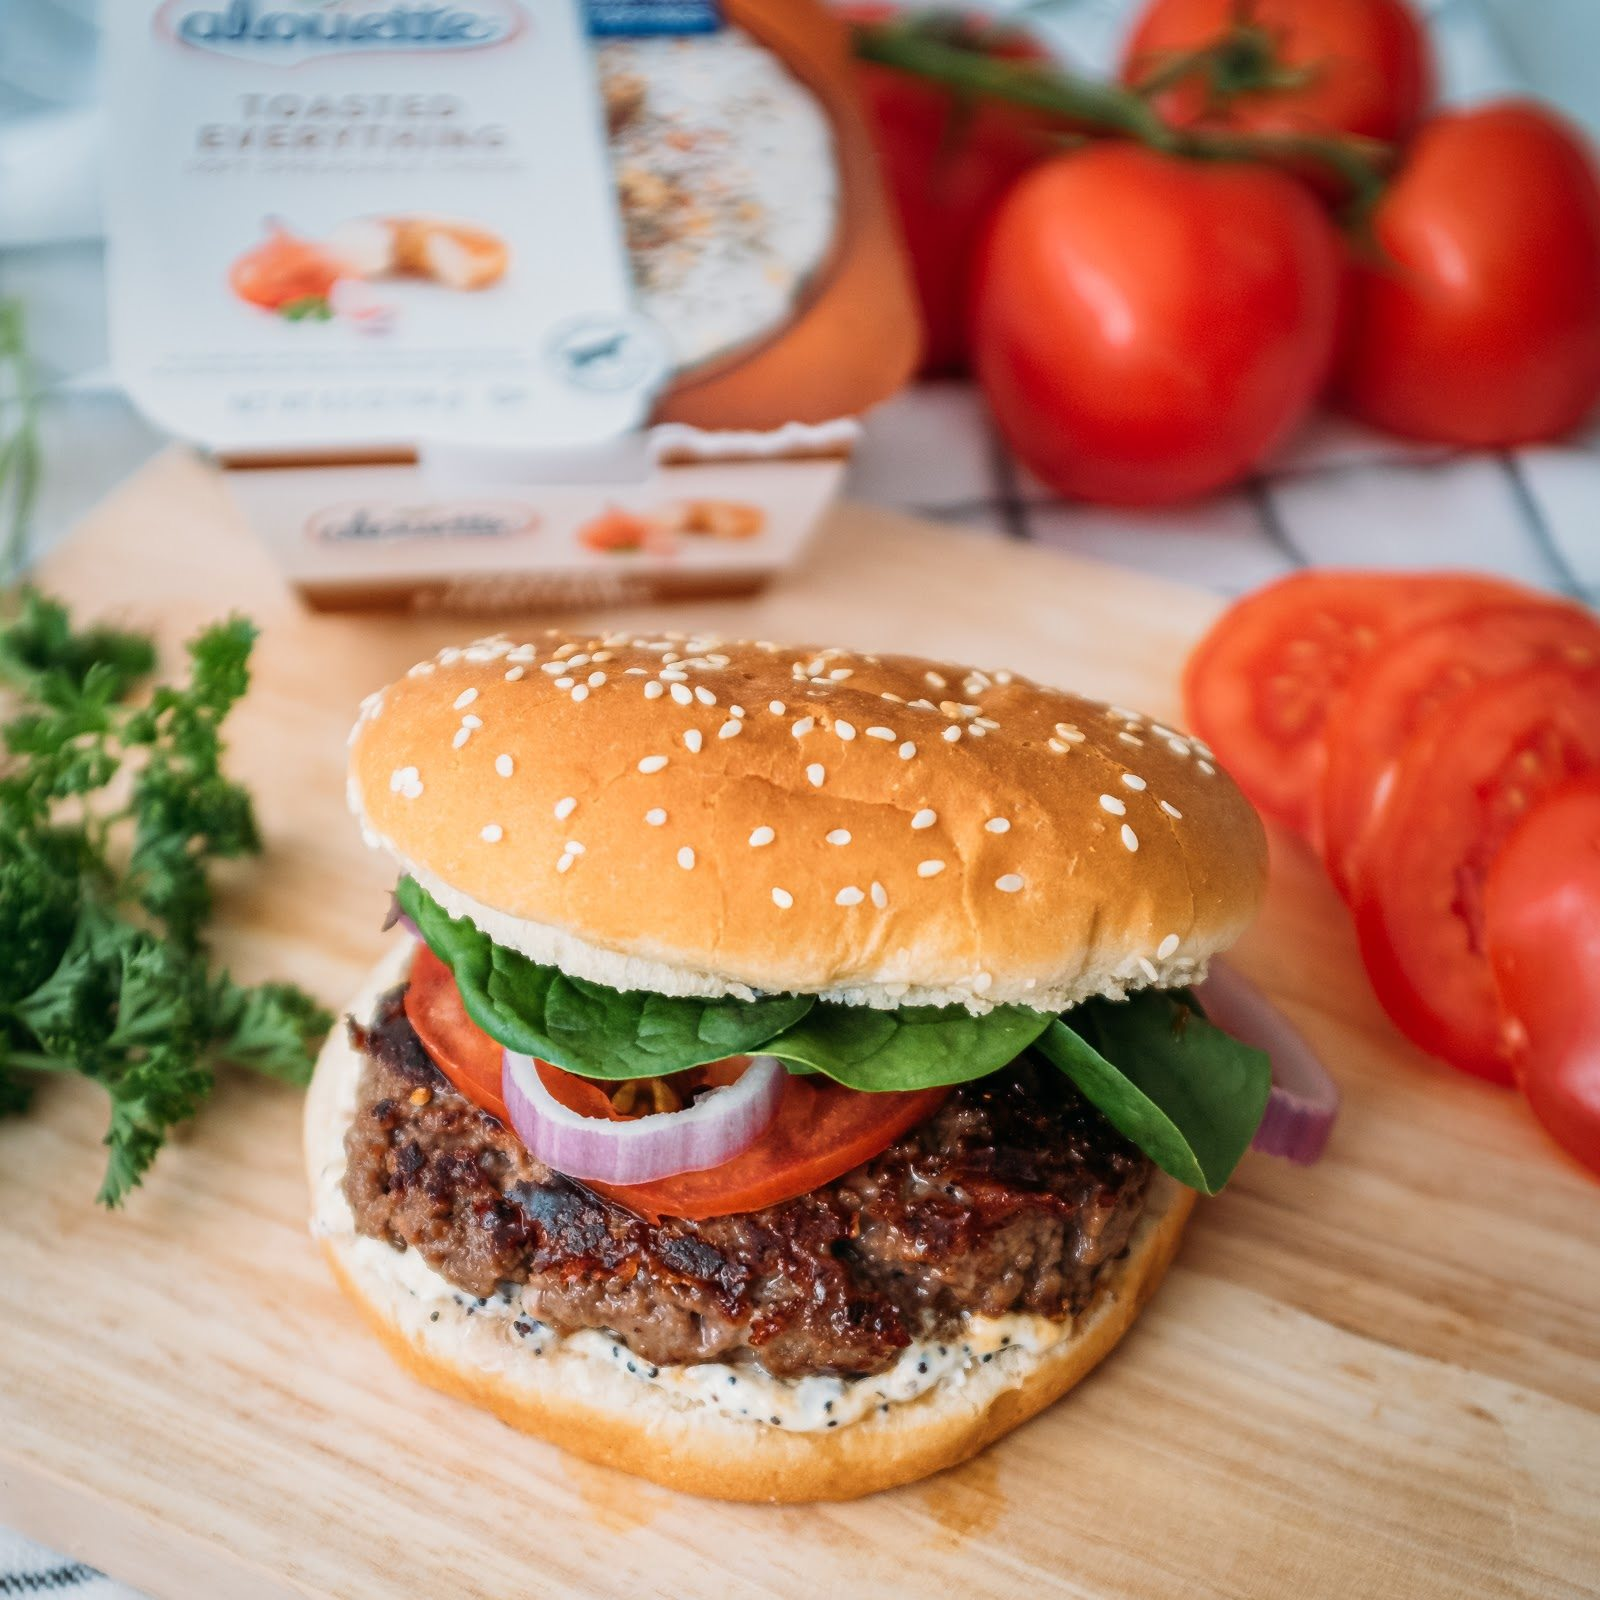 Hamburger with Aouette toasted everything, a patty, tomato, onion, salad